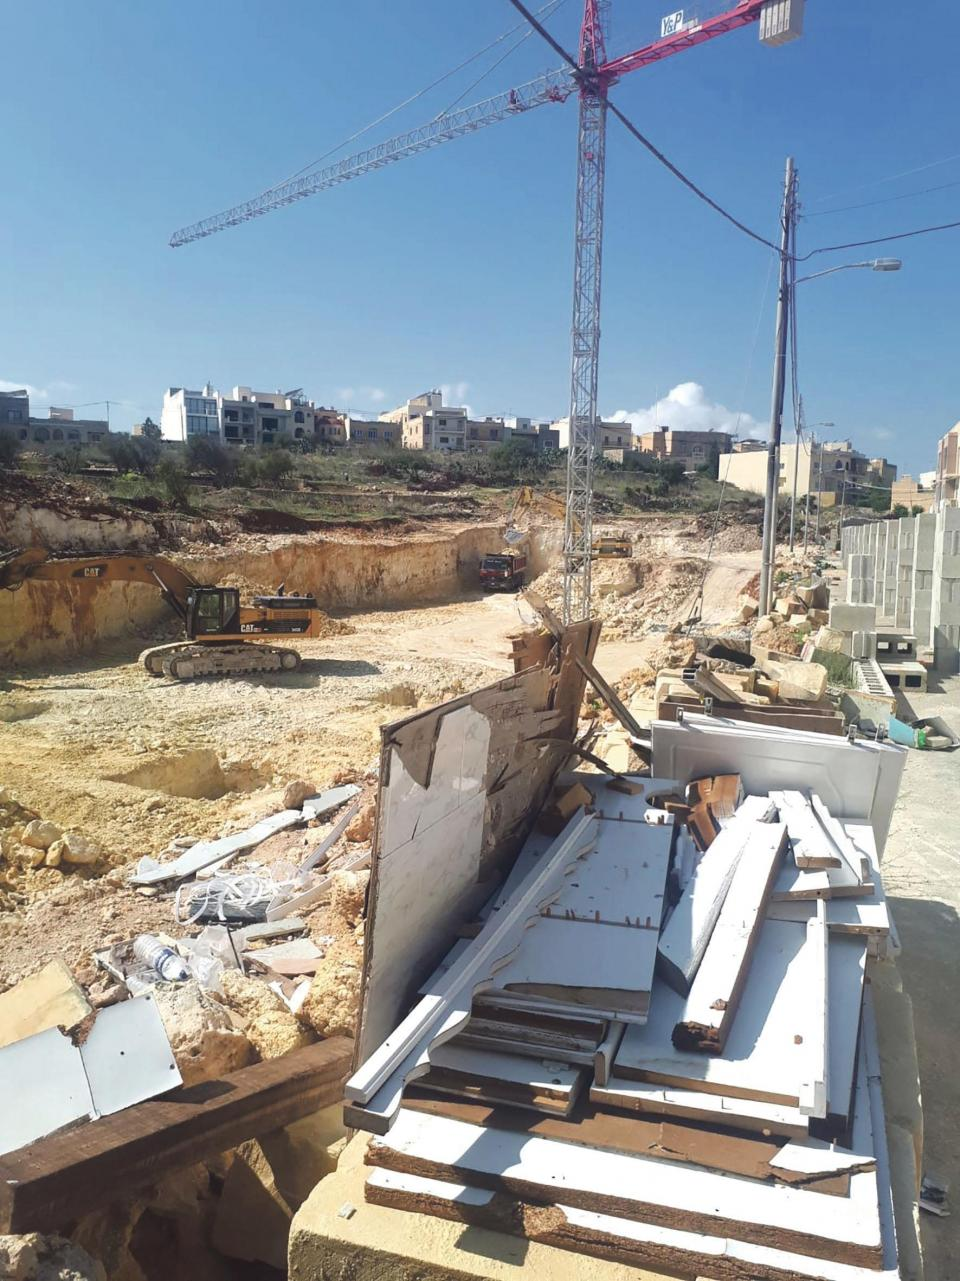 Excavations for the flats in Qala.